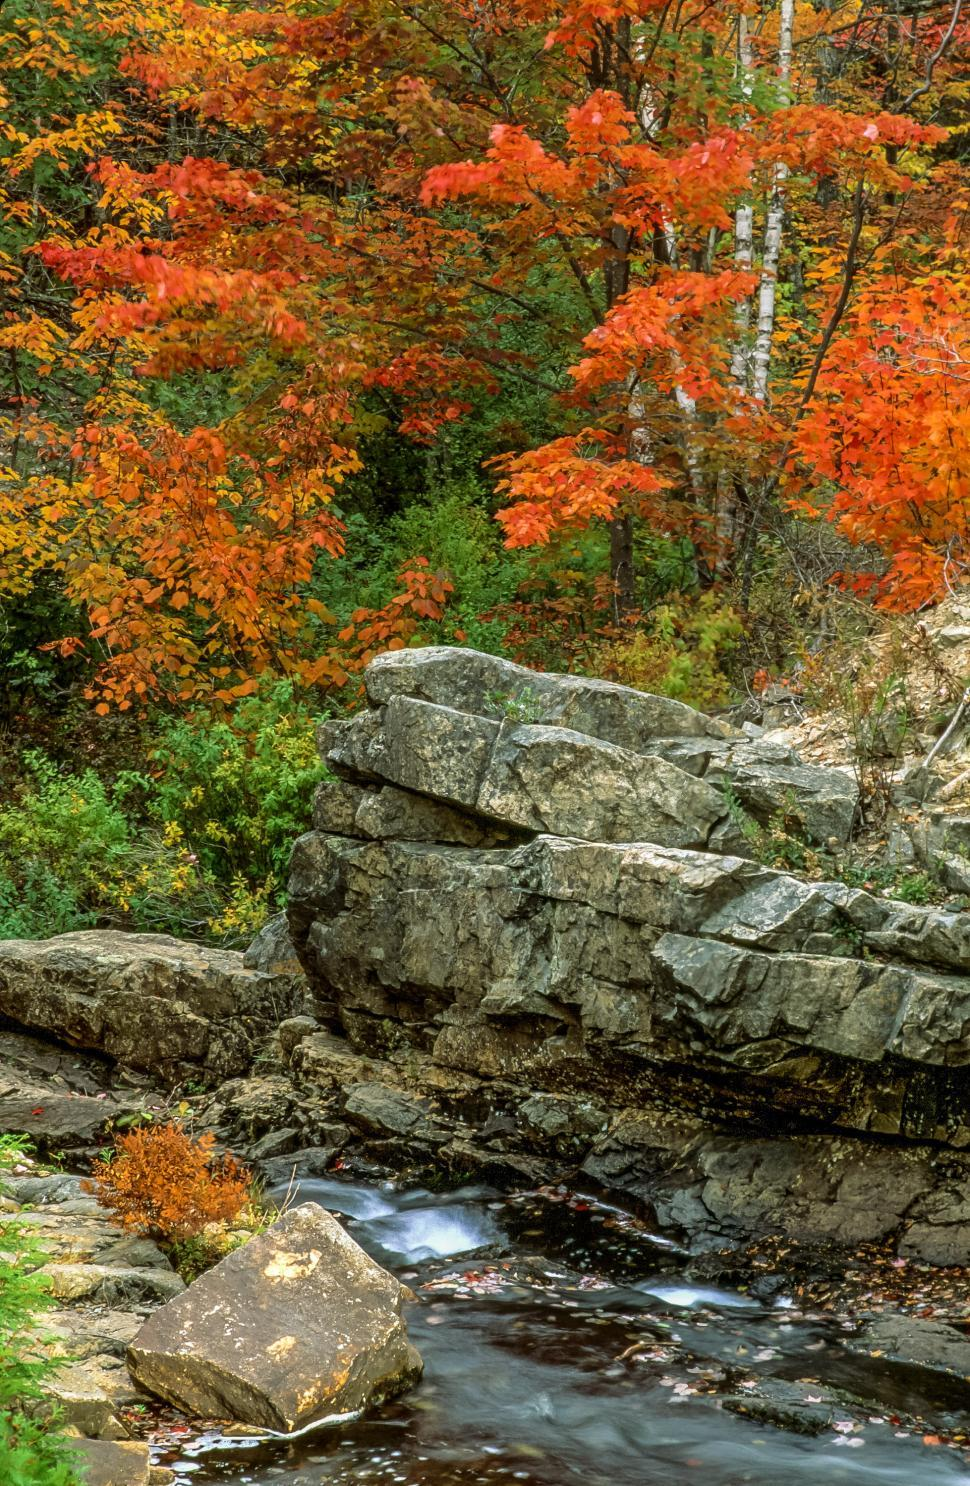 Download Free Stock Photo of Fall foliage colors and stream